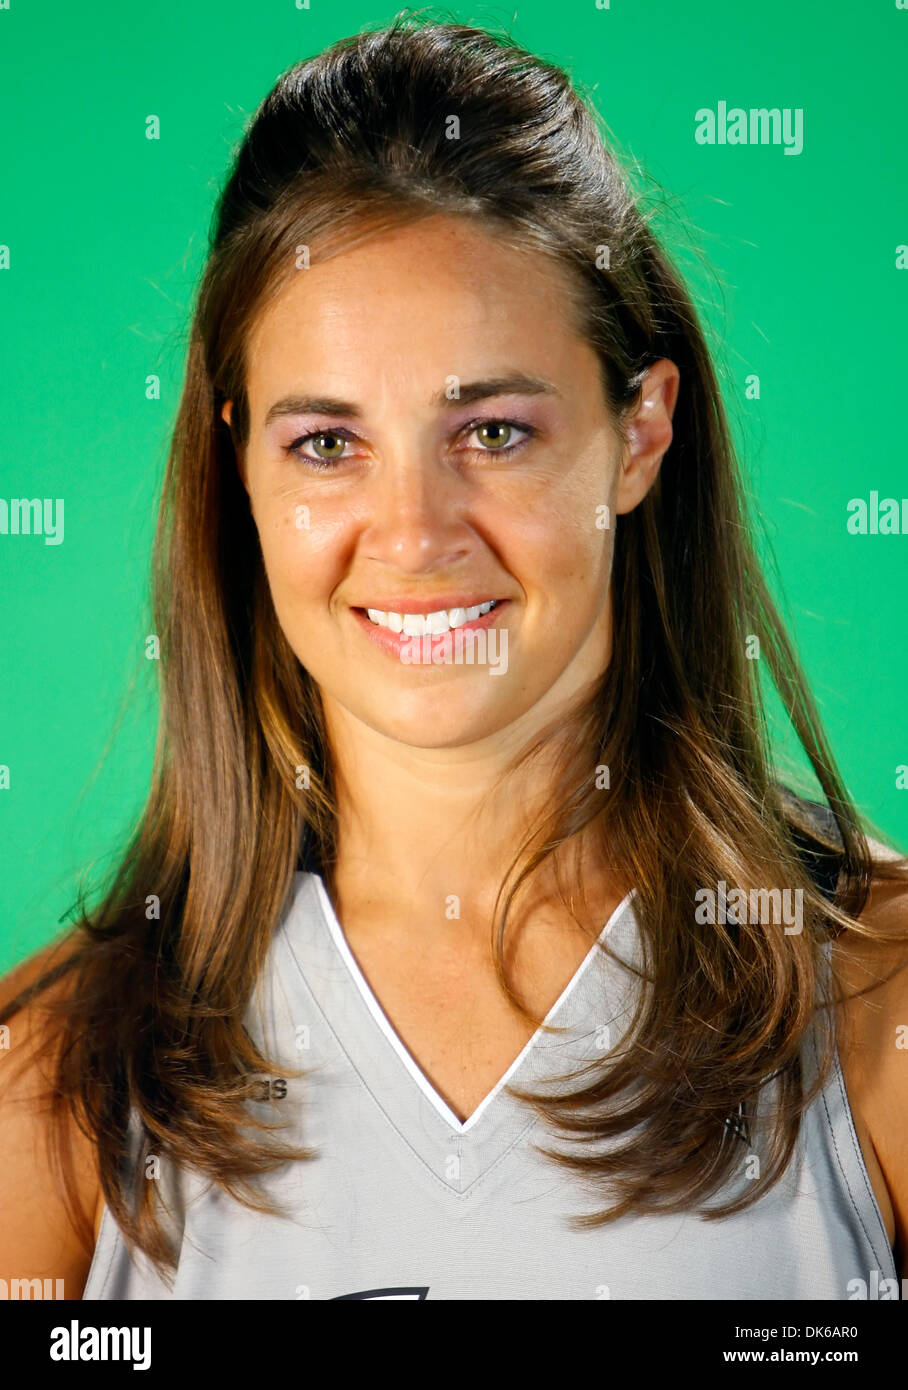 May 19, 2011 - San Antonio, TEXAS, USA - The WNBA's Silver Stars Becky Hammon stands in front of a green screen Wednesday May18, 2011 at their practice facility, the Antioch Baptist Church recreation center, during the team's media day. (Credit Image: © San Antonio Express-News/ZUMAPRESS.com) - Stock Image